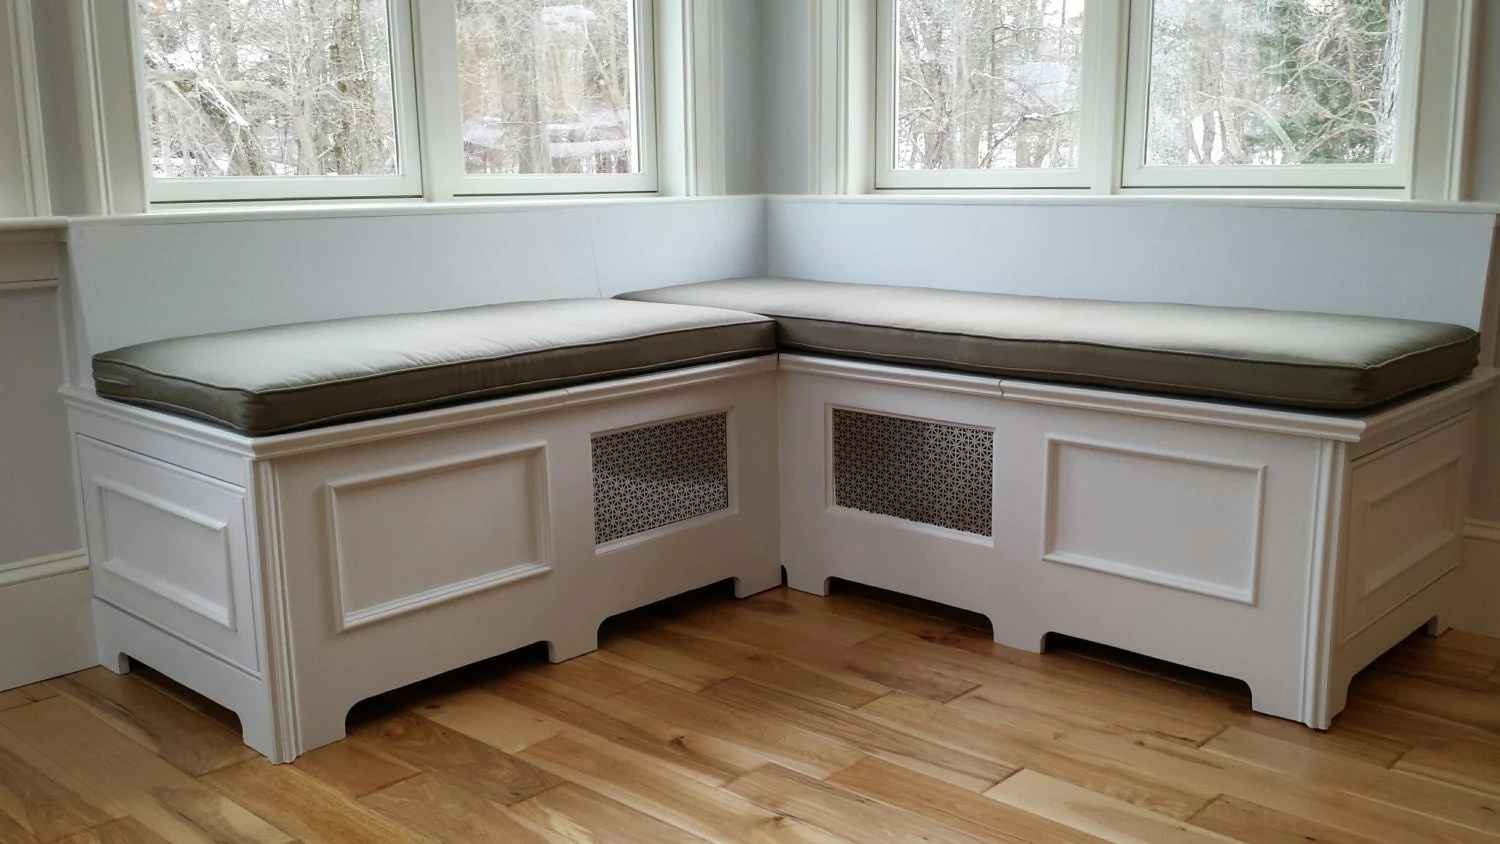 L Shaped Bench Seating Storage